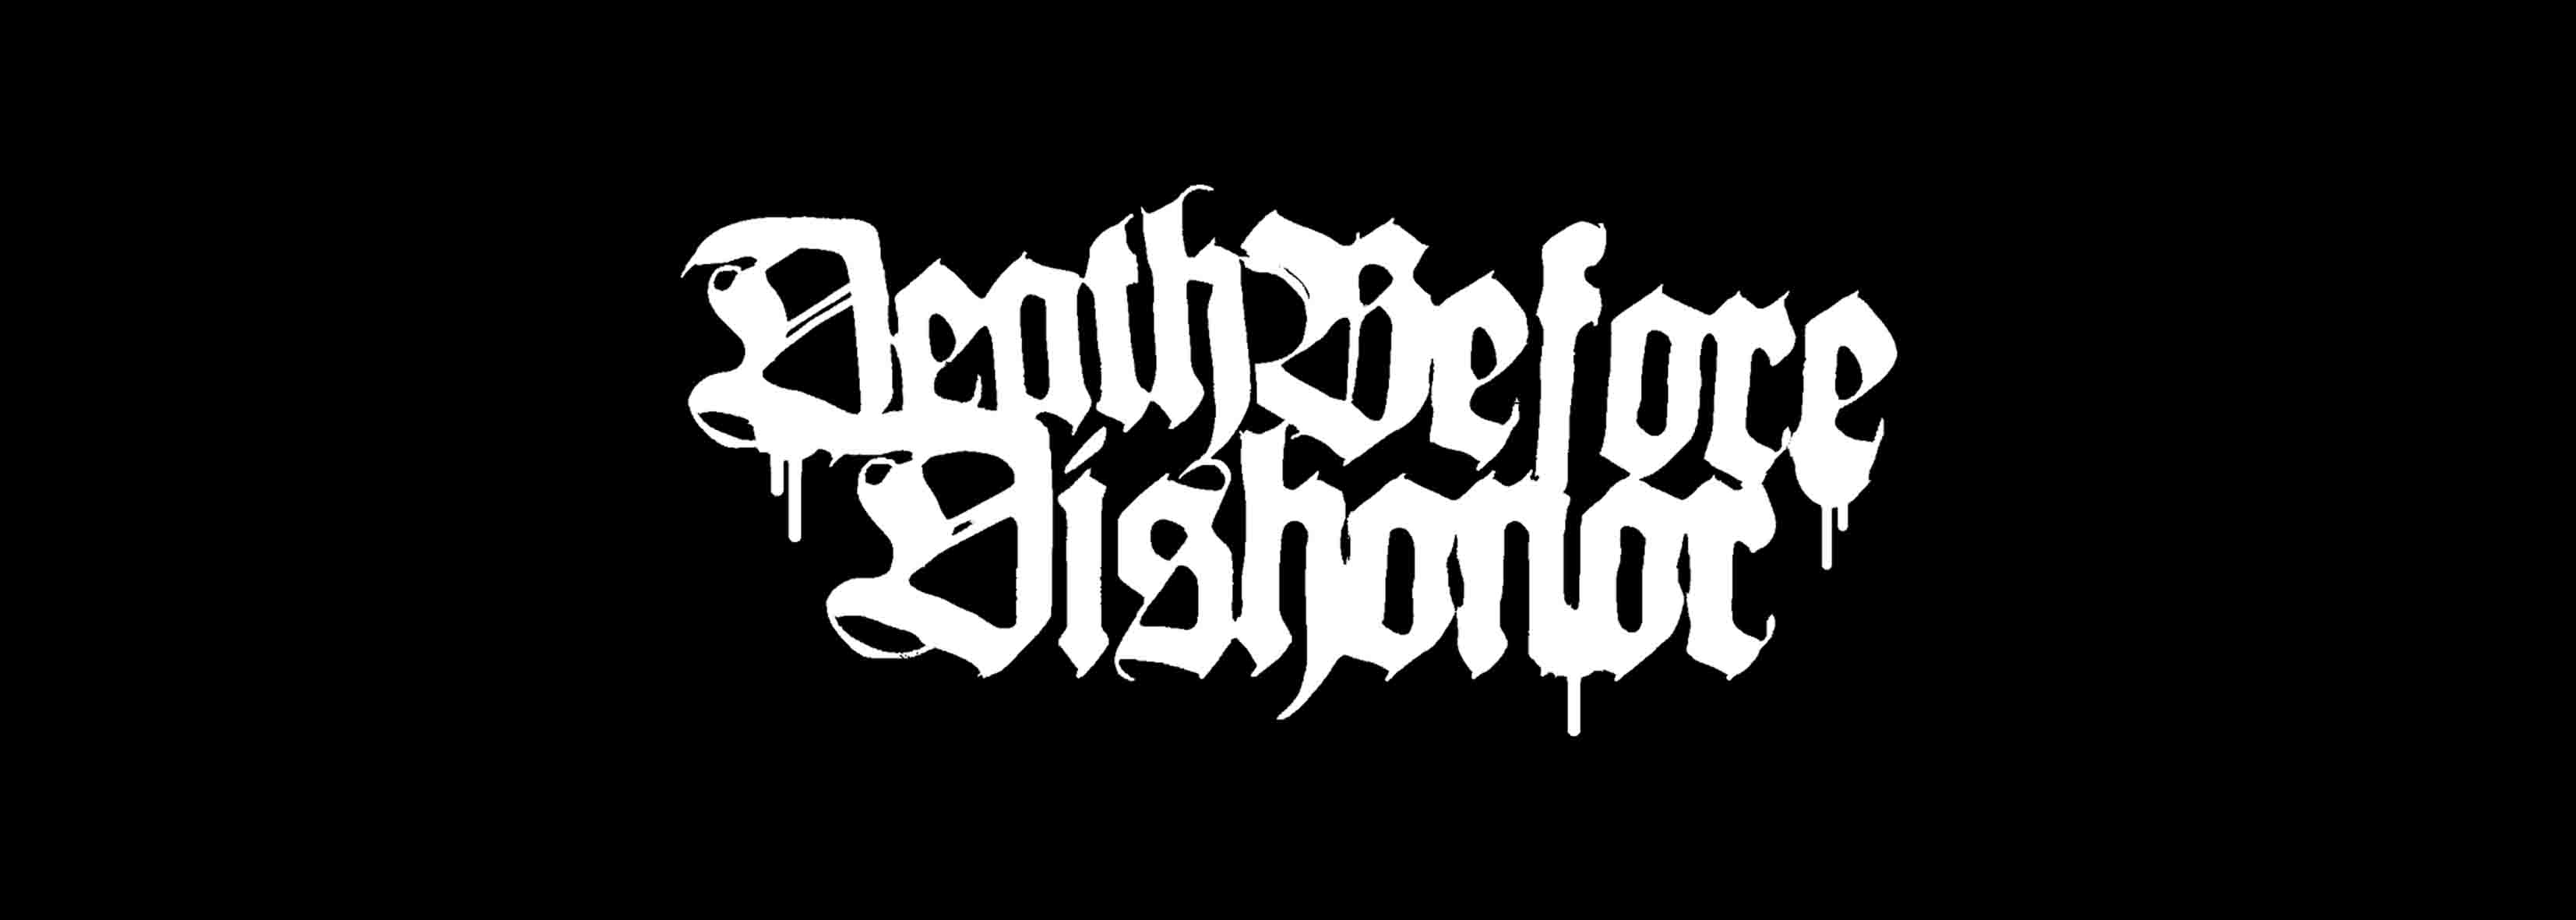 DEATH BEFORE DISHONOR - TOURDATES